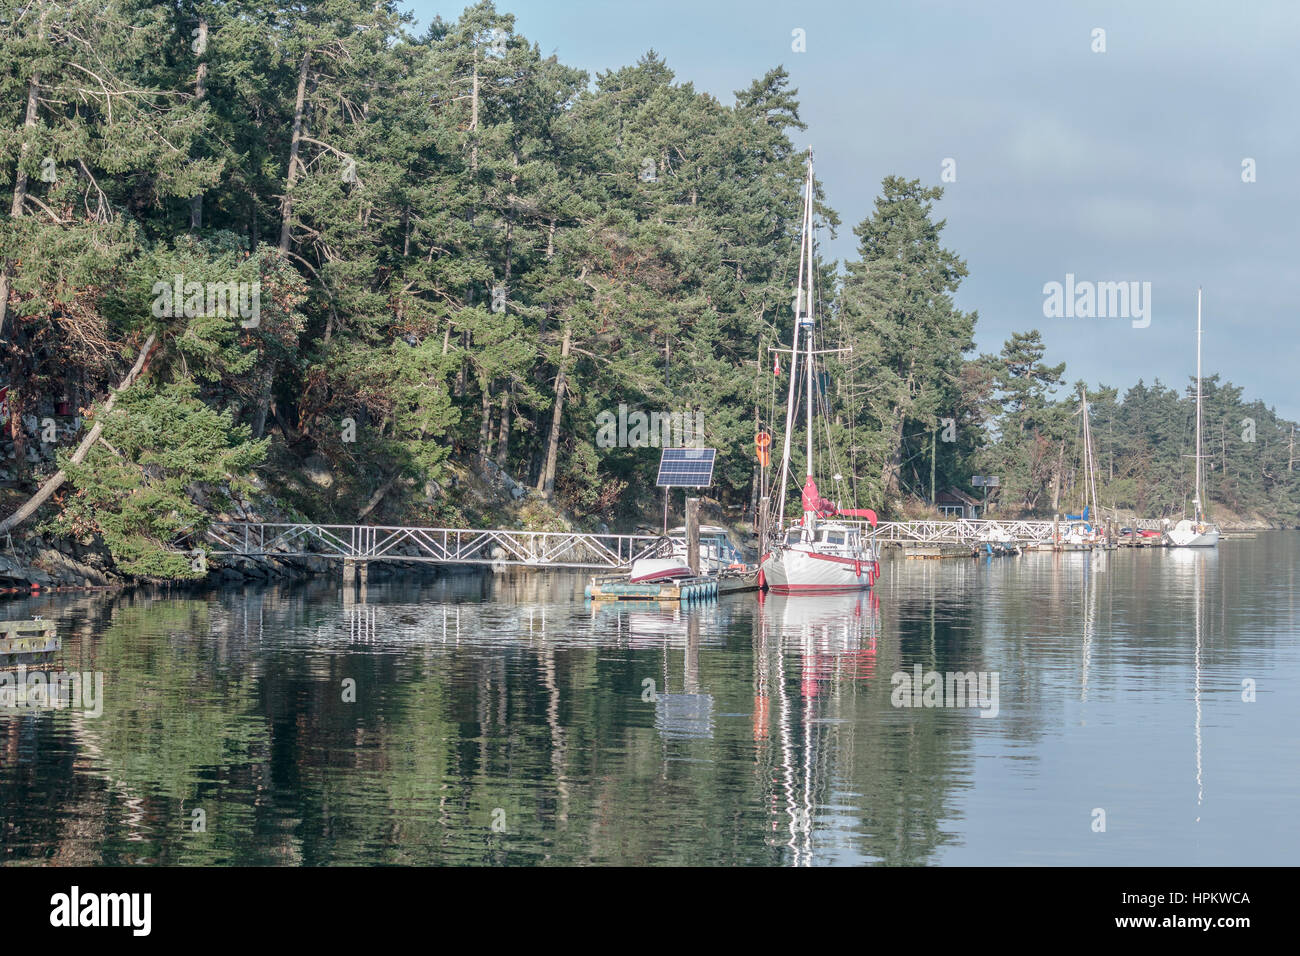 Morning light in early autumn in the Gulf Islands: docks, boats and solar panels line the shore of a small water - Stock Image